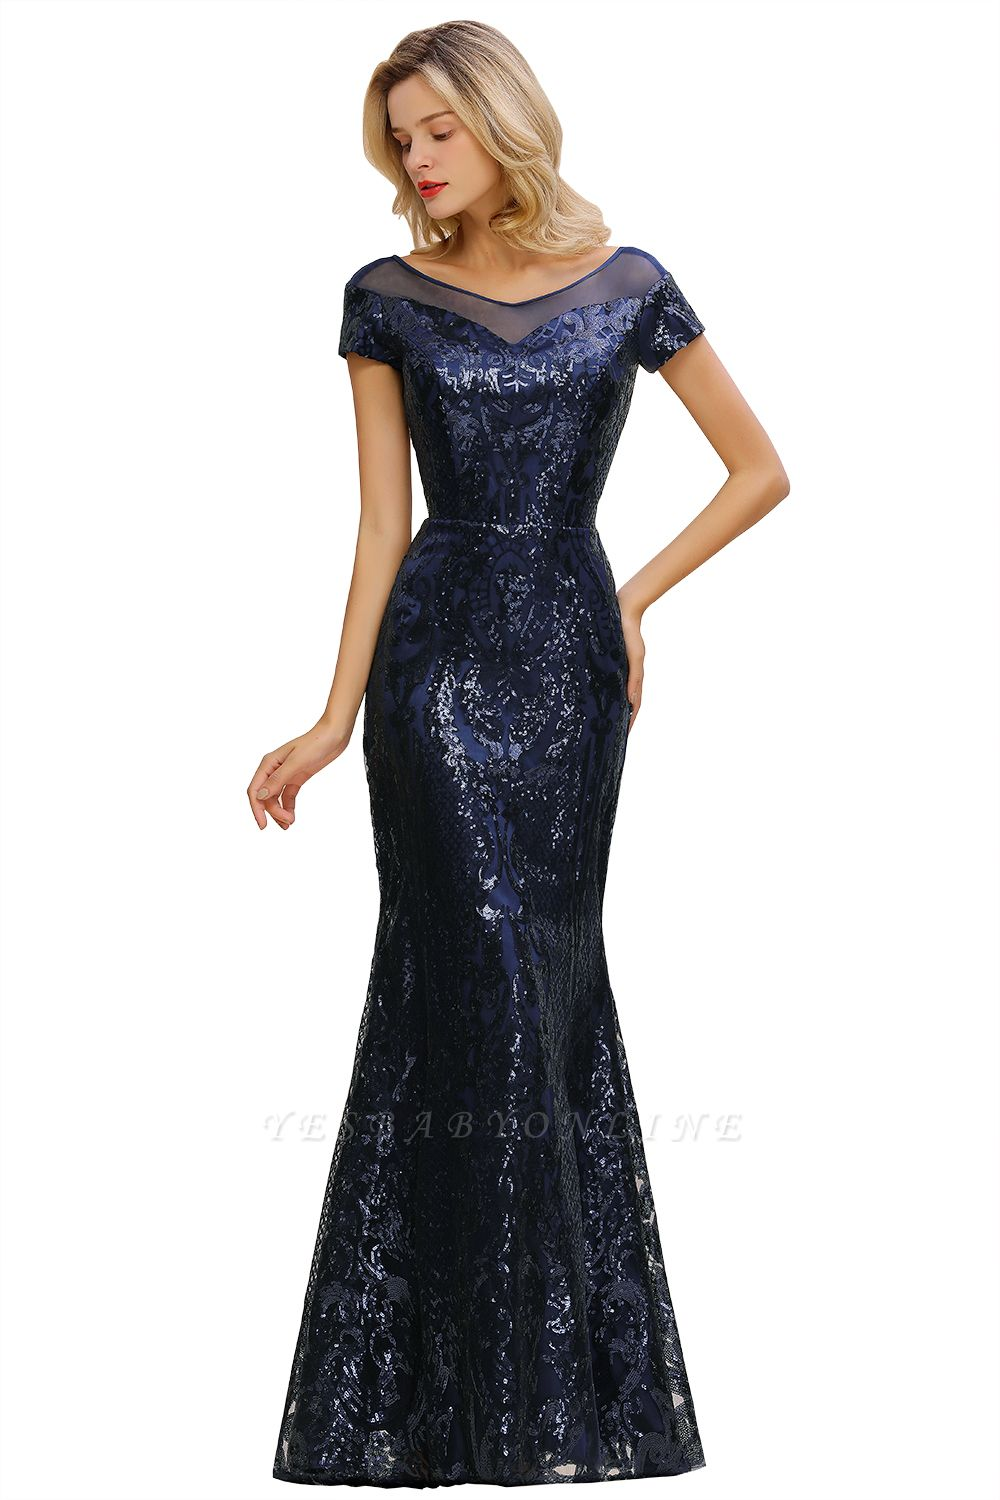 Bateau Short Sleeves Long Sequins Prom Dresses   Floor Length Fitted Evening Dresses